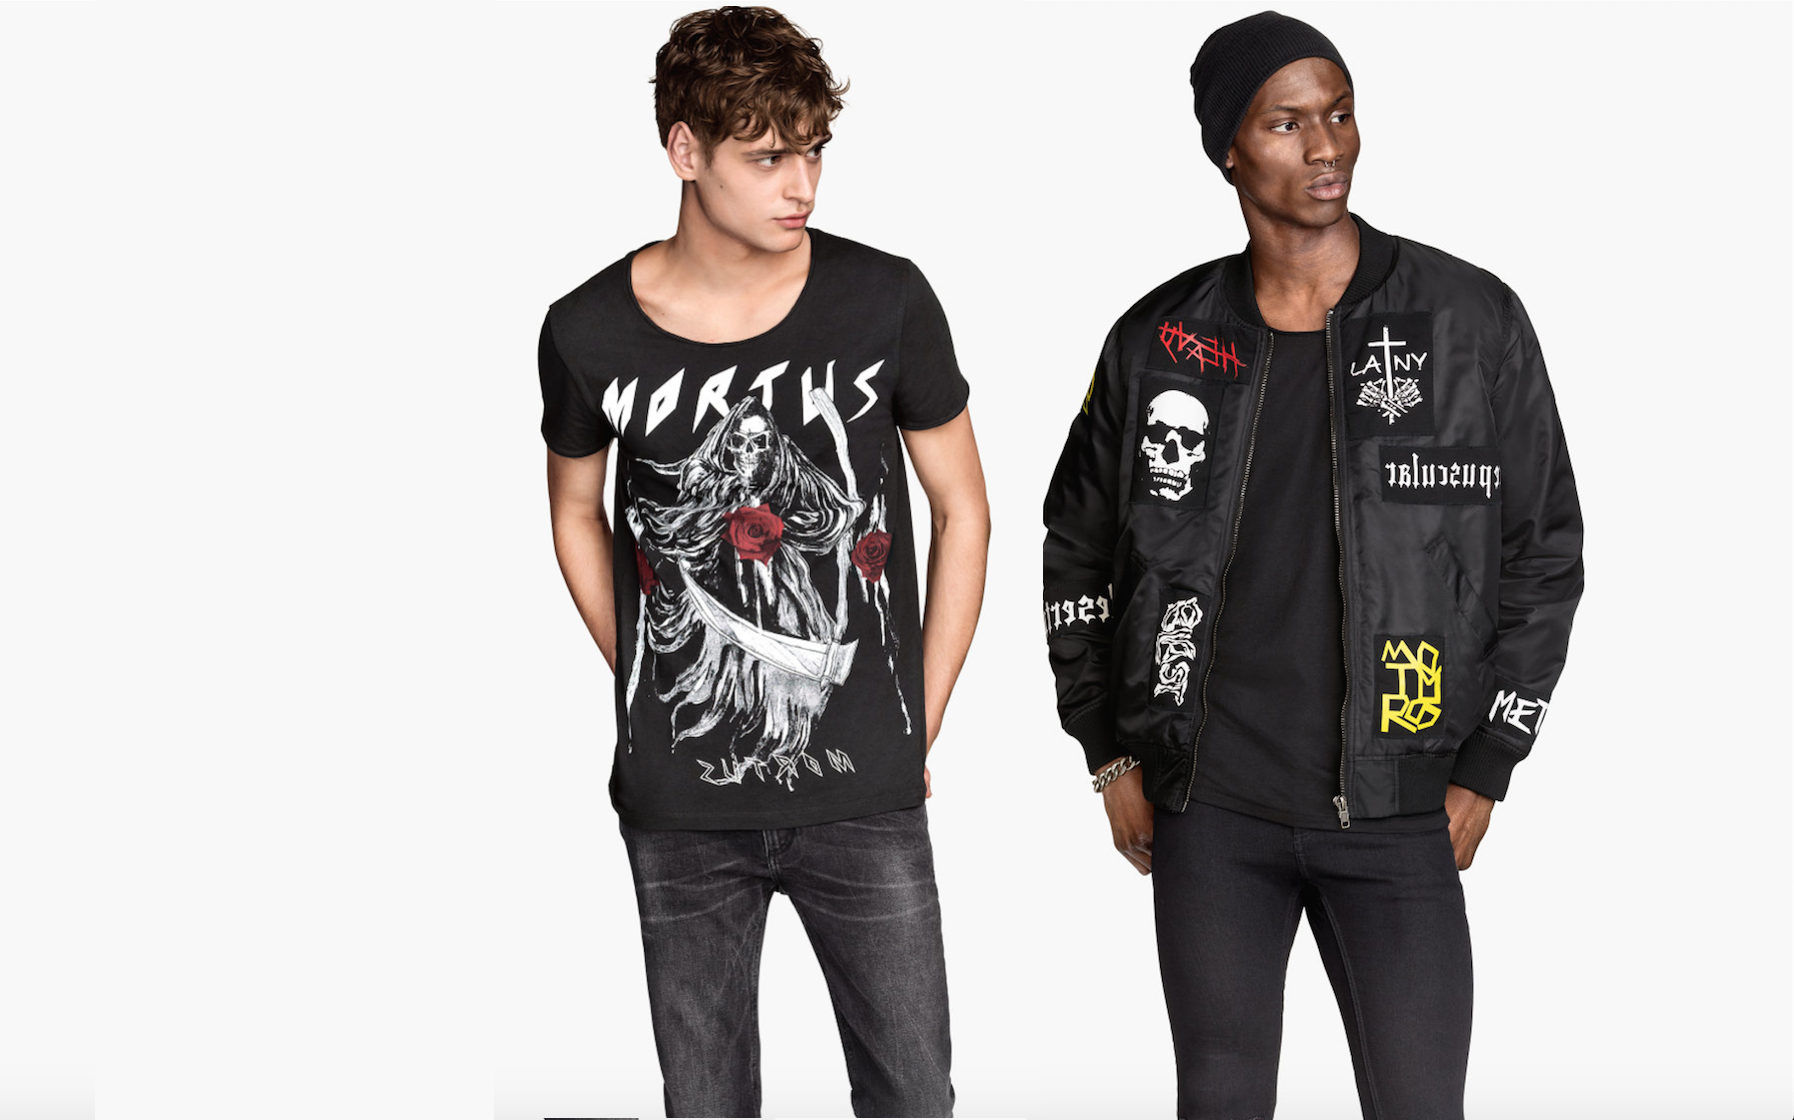 H&M accused of creating fake underground, neo-nazi metal bands to promote clothing line